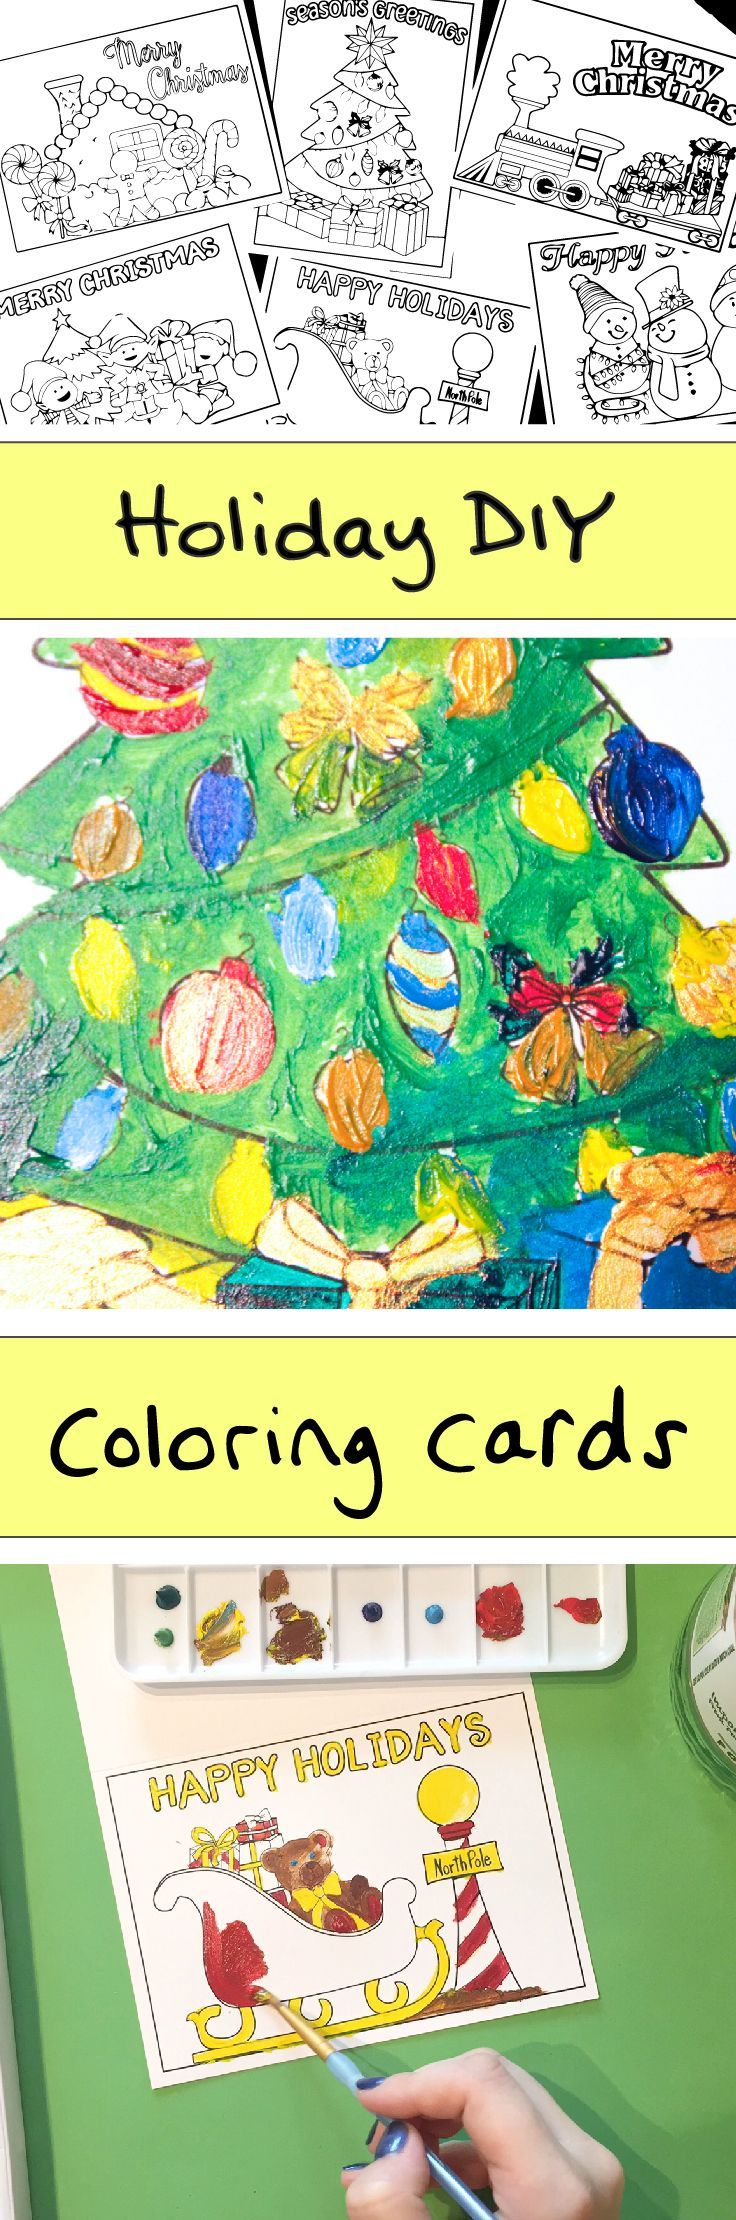 Here's a fun holiday DIY idea for kids: color your own Christmas cards! This painting tutorial for Christmas coloring cards illustrates how to paint coloring book style graphics with acrylic paint. It's a holiday DIY idea inspired by TheInviteLady.com. Cards include snowmen, bears, presents, gifts with bows. You can use markers, crayons or colored pencils. http://www.sipbitego.com/holiday-diy-idea-christmas-coloring-cards/